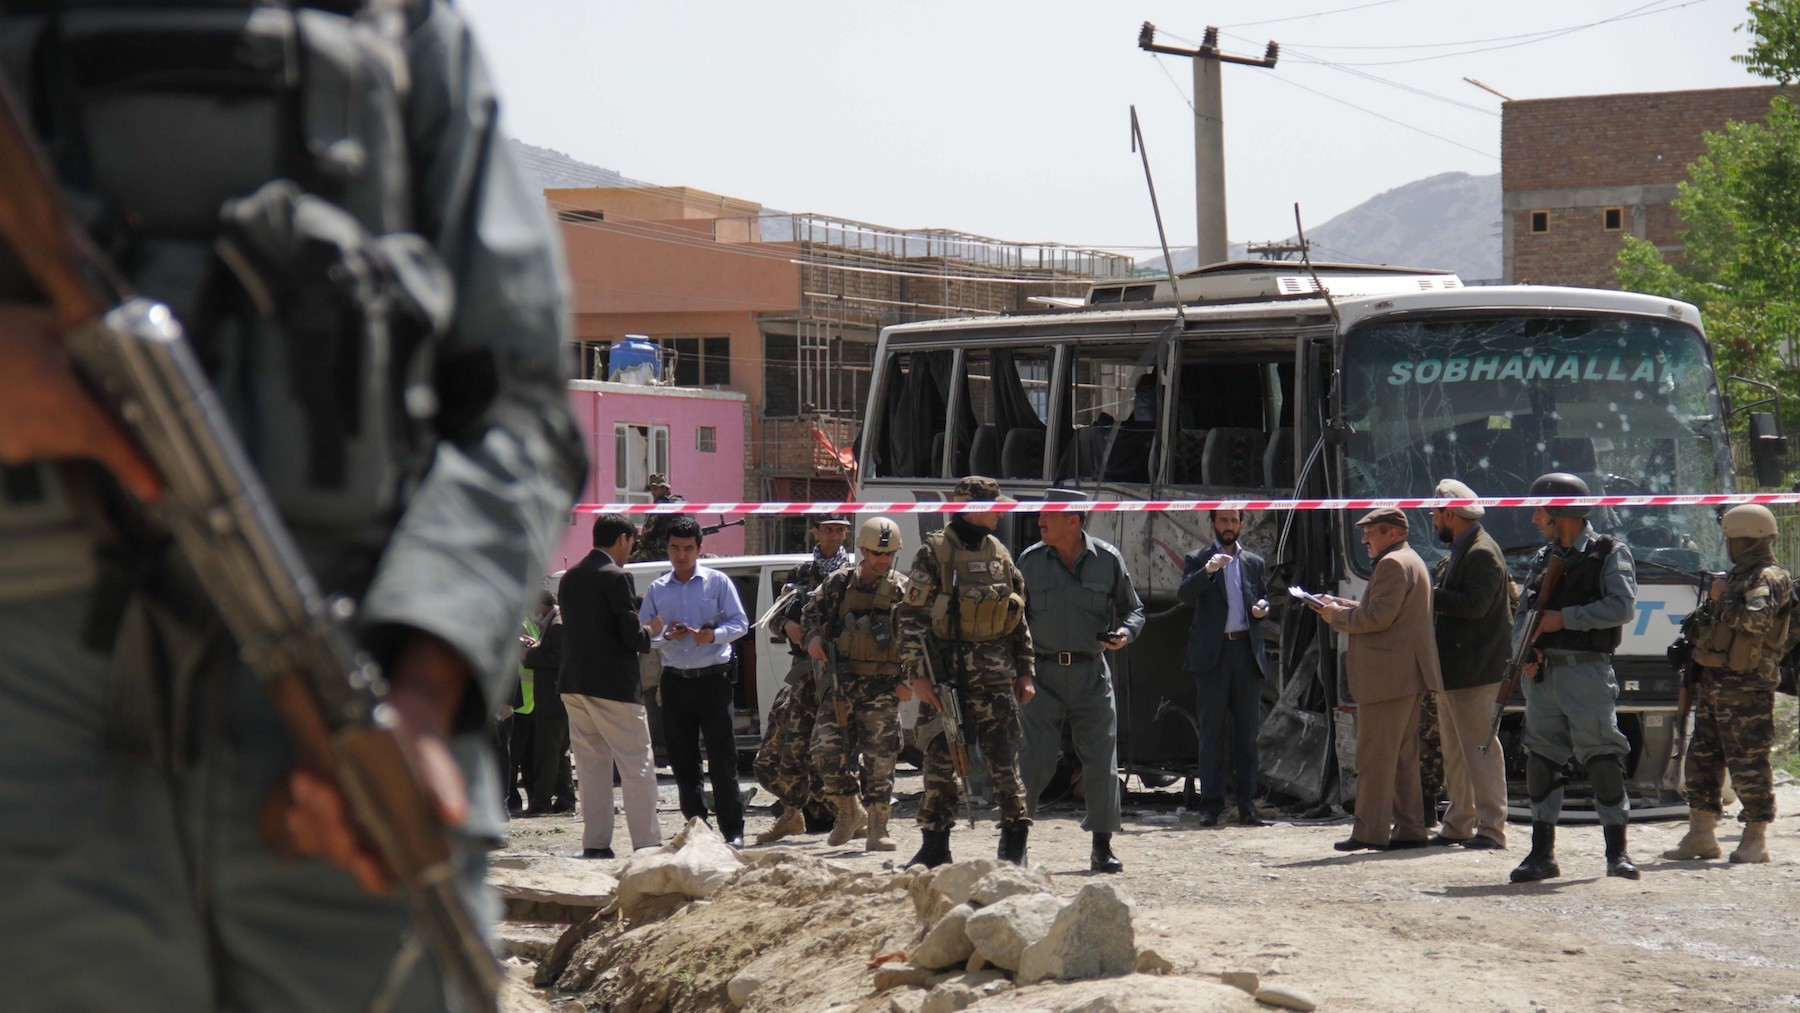 Taliban Claims Suicide Attack While Suggesting an Opening for Peace Talks